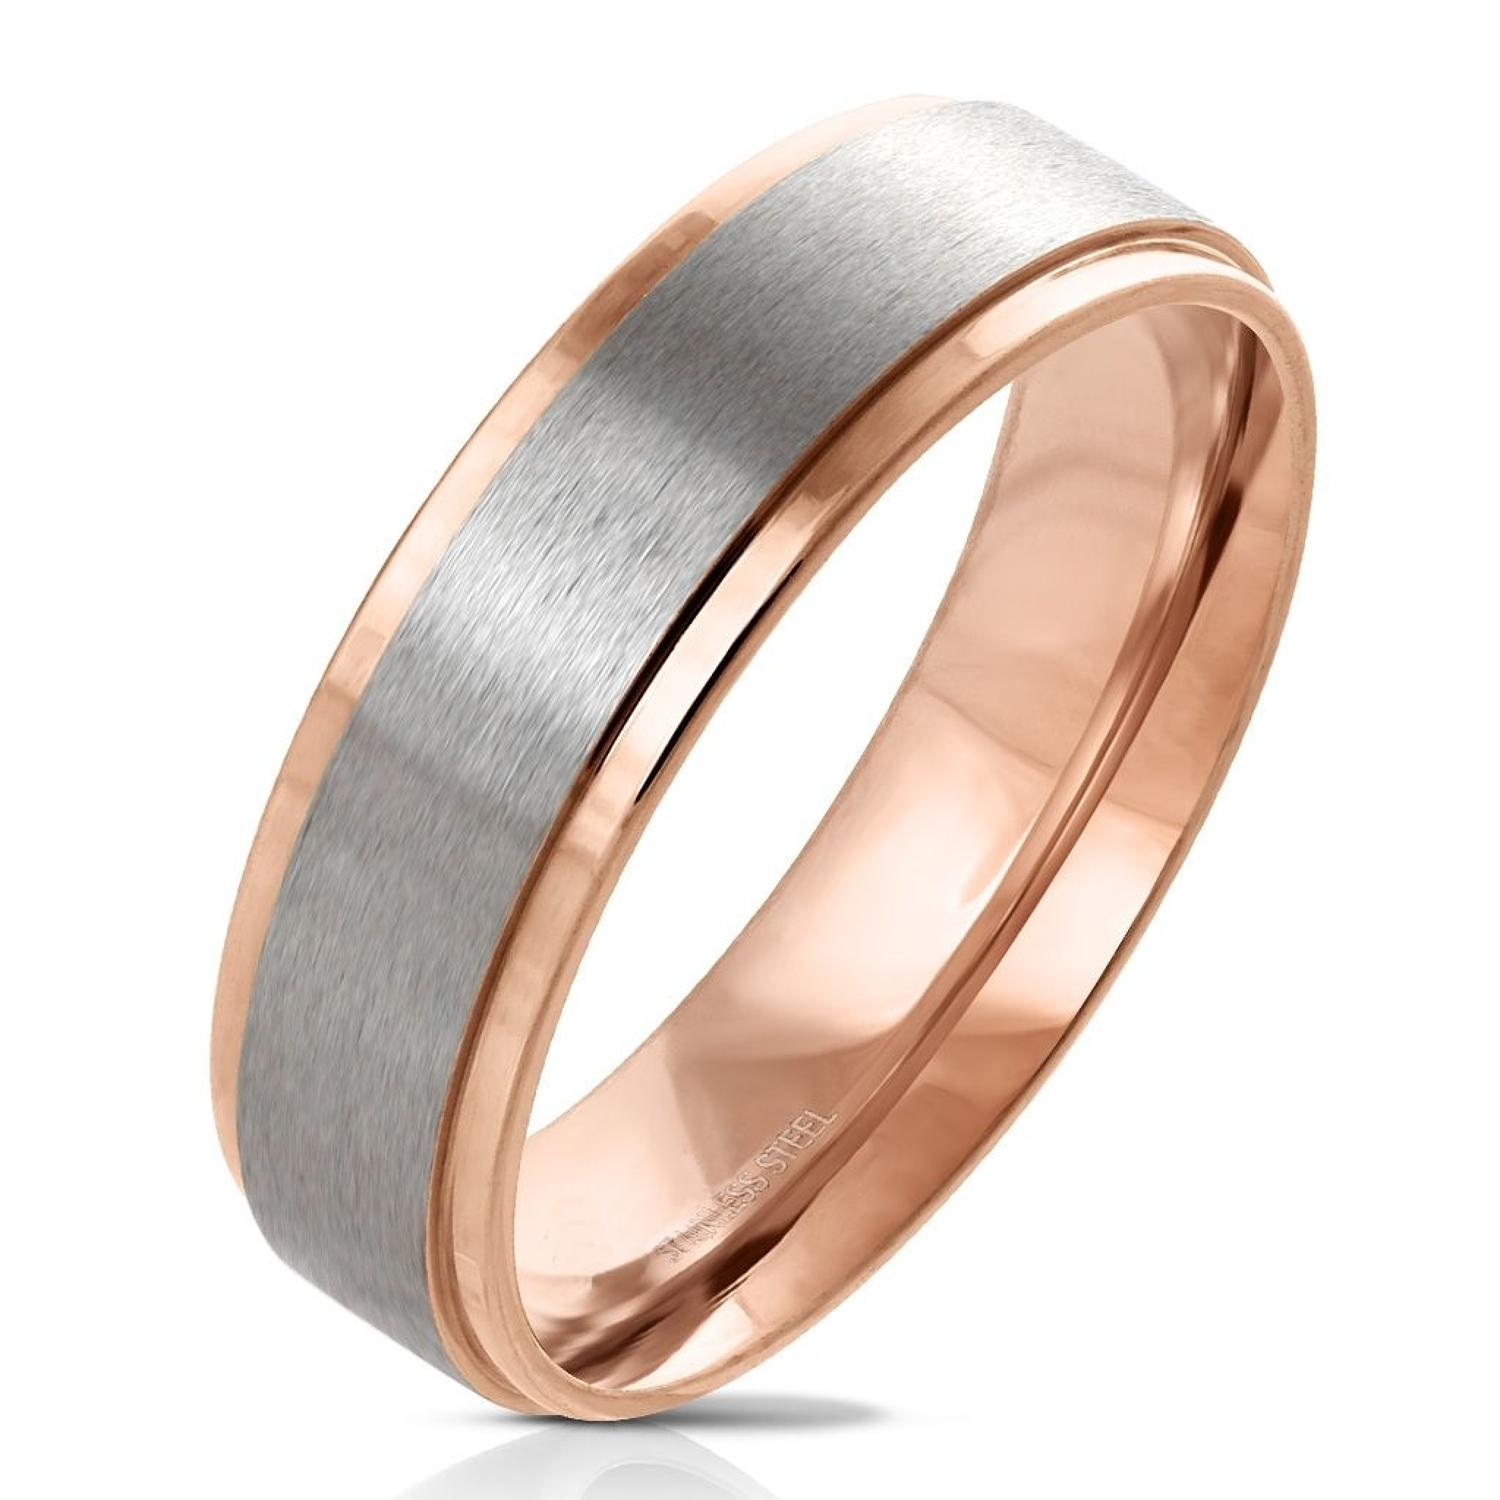 Rose Gold IP Edge with Brushed Stainless Steel Centre Band Ring